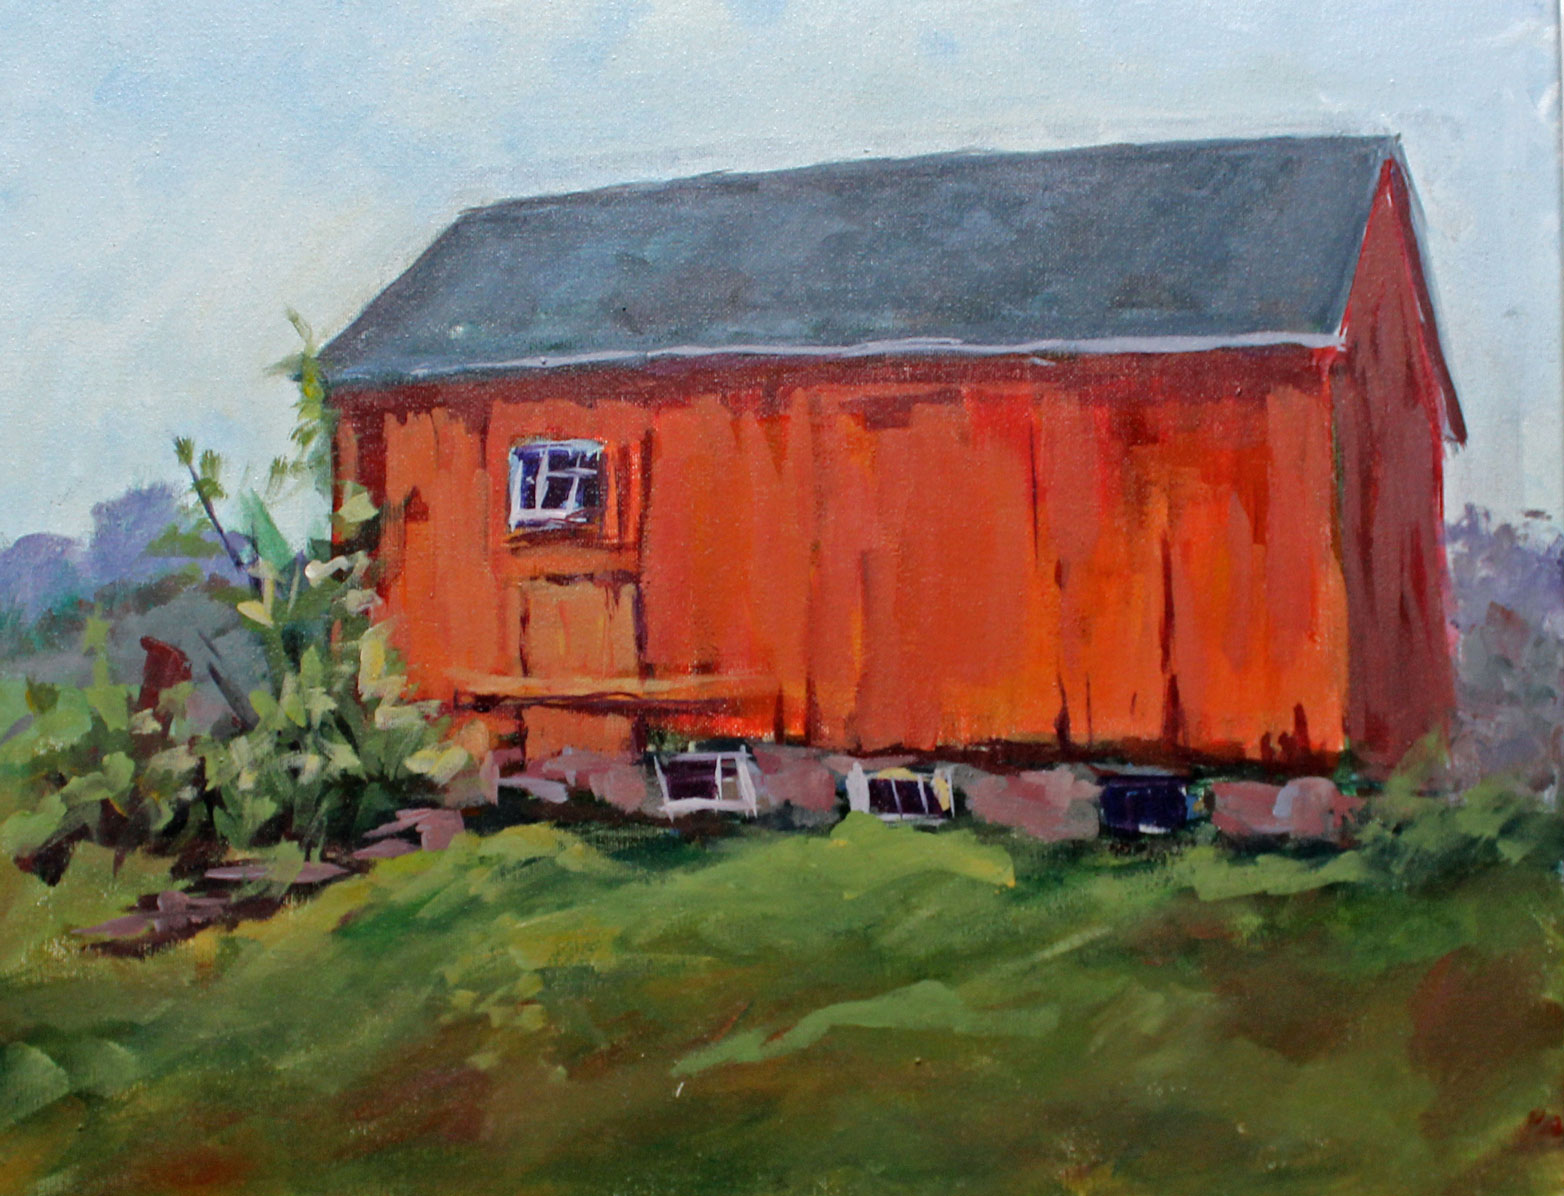 The Red Barn at Meetinghouse Hill by Sharon Chaples</font></a>